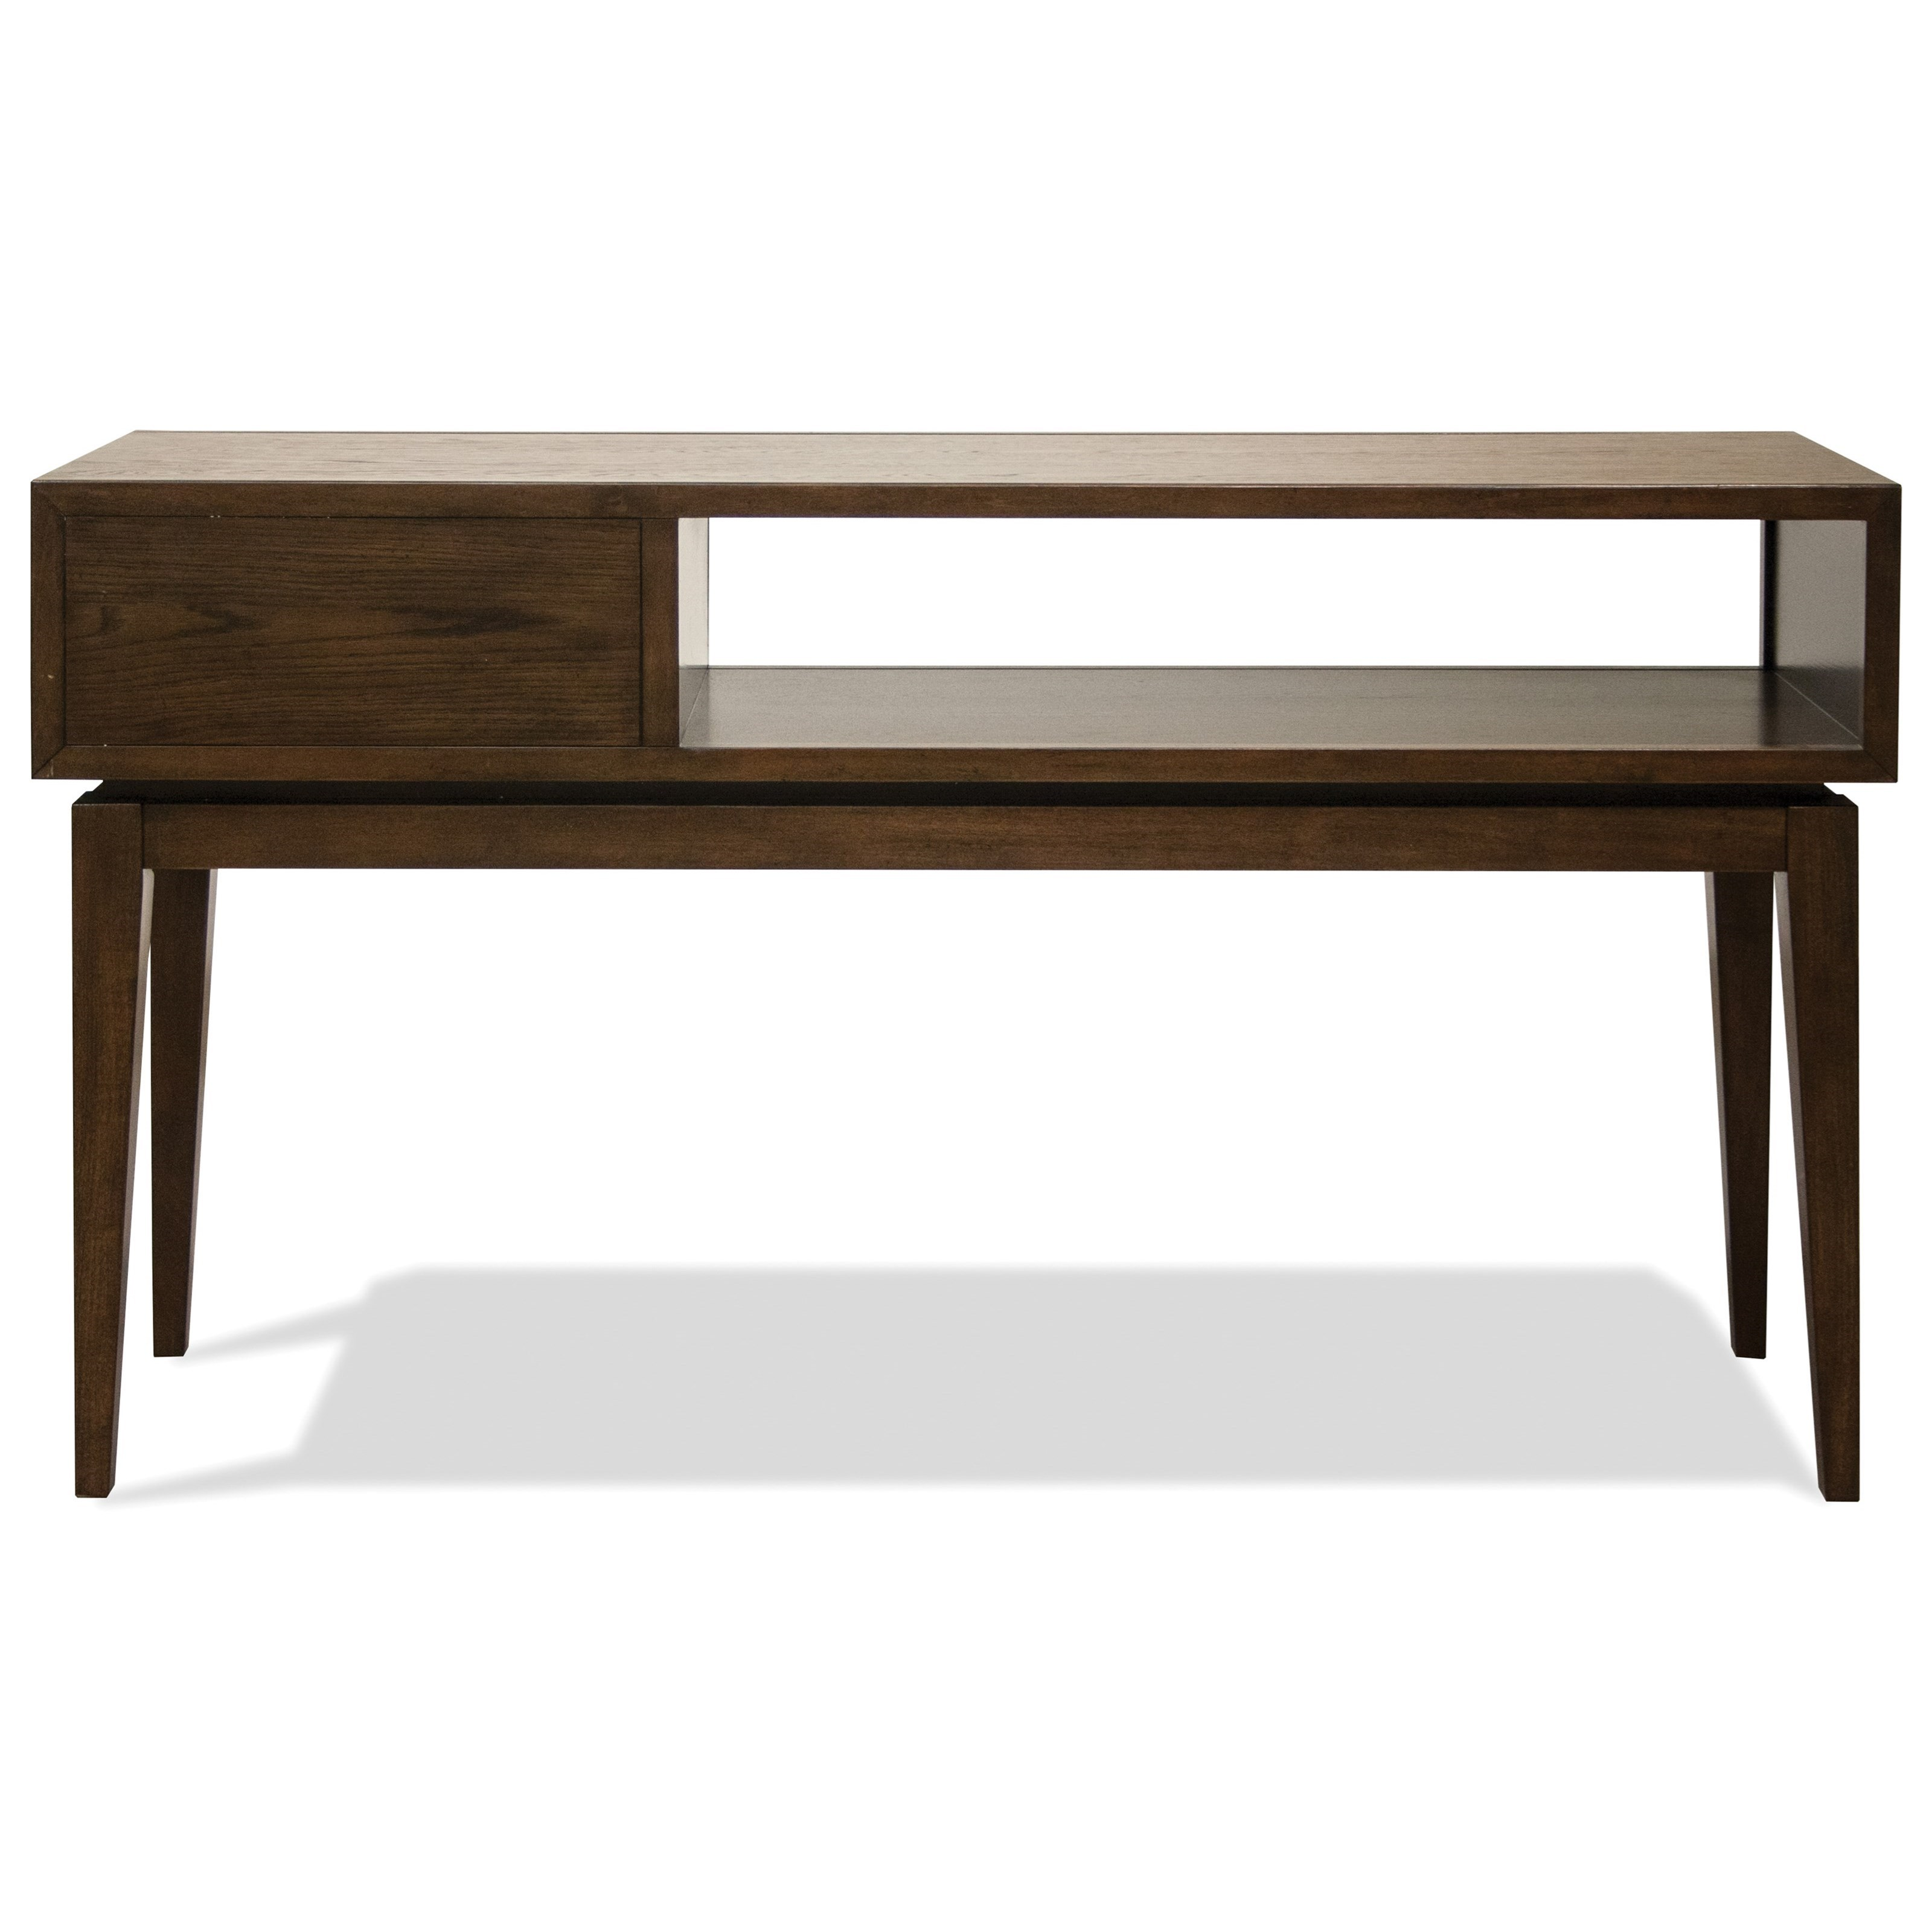 vogue chrome sofa table corner bed sale ireland riverside furniture 1 drawer console with mid